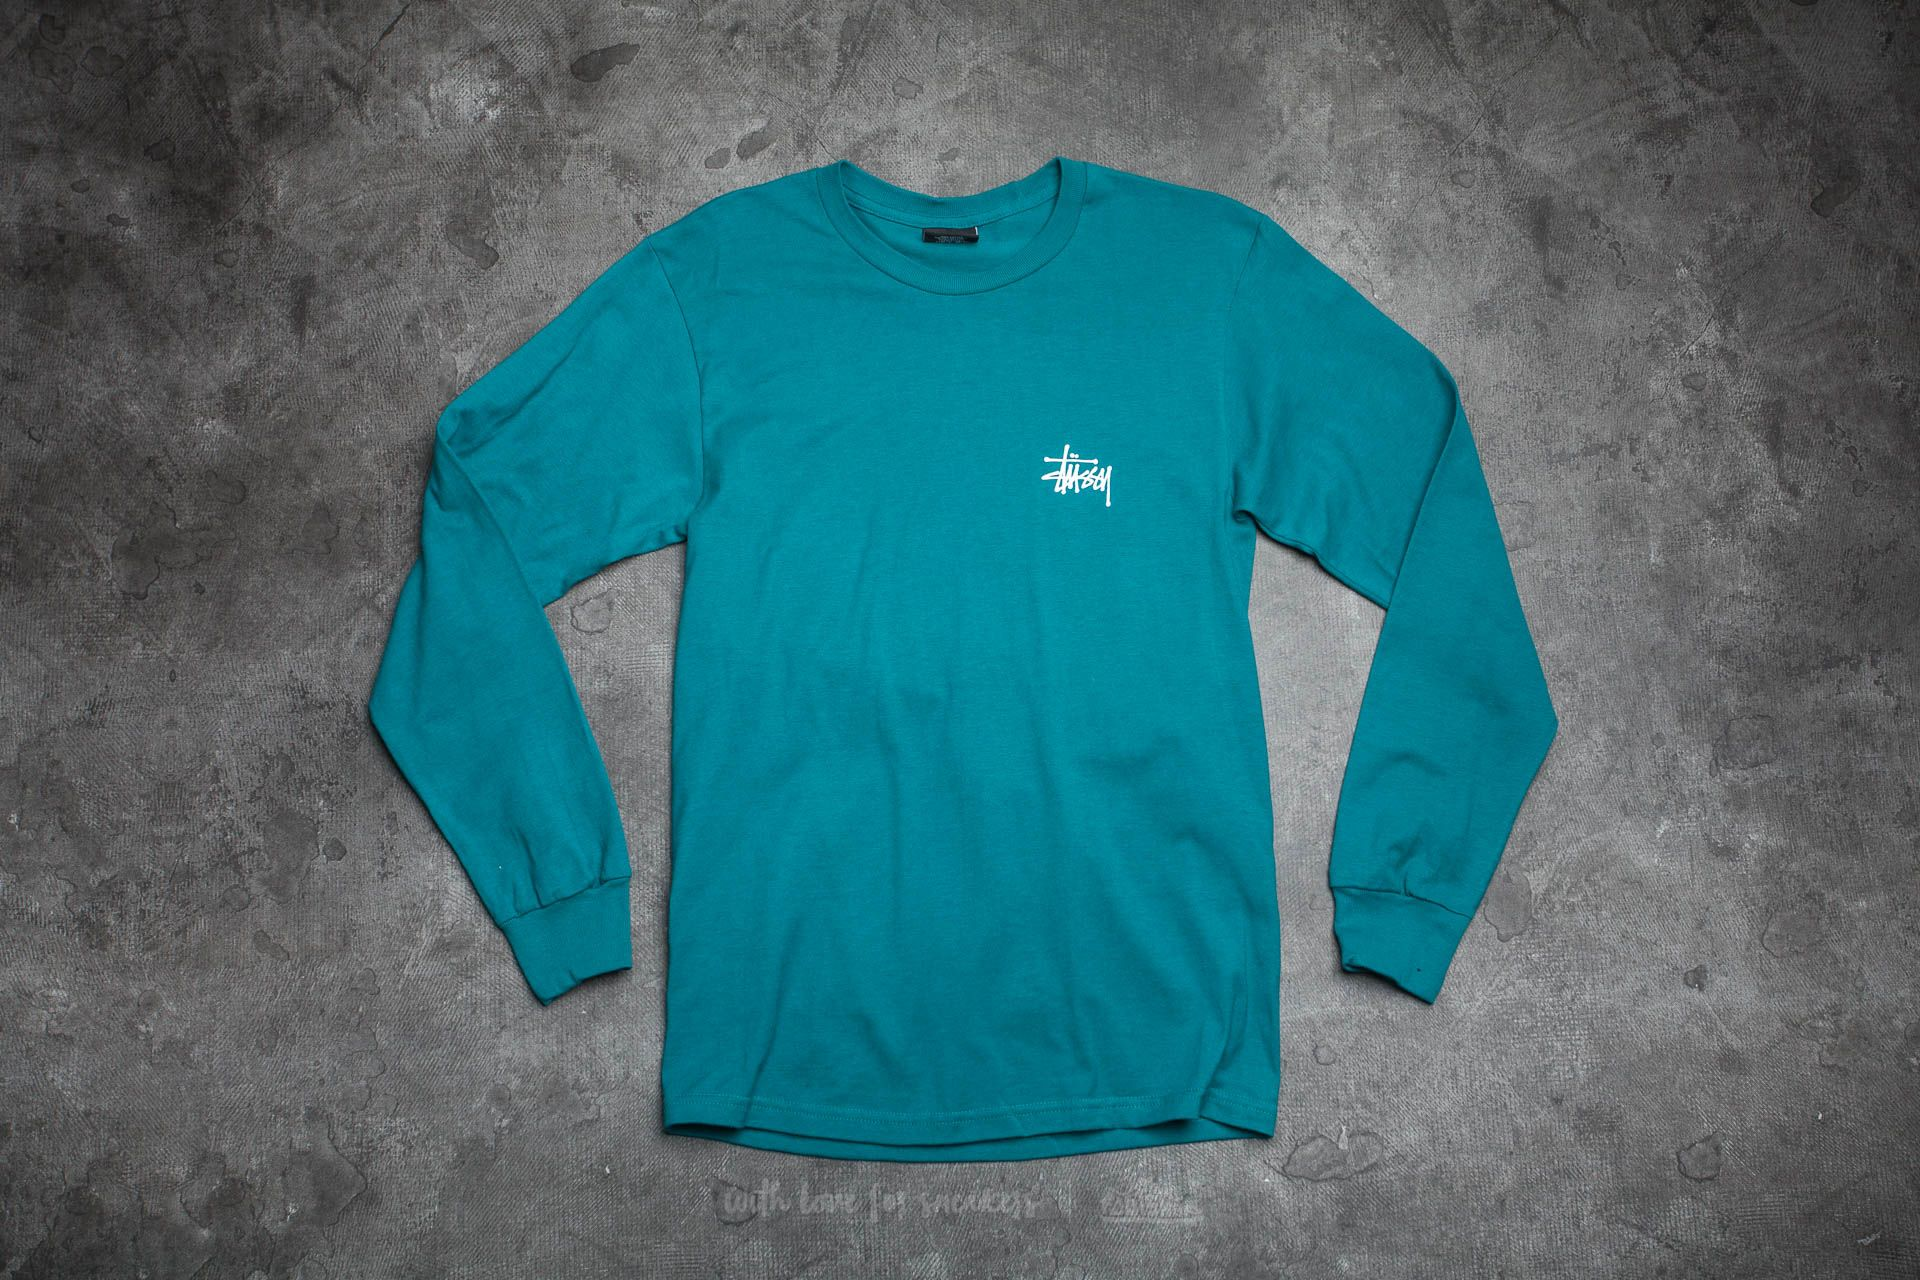 Stüssy Basic Long Sleeve Tee Dark Teal - 14527